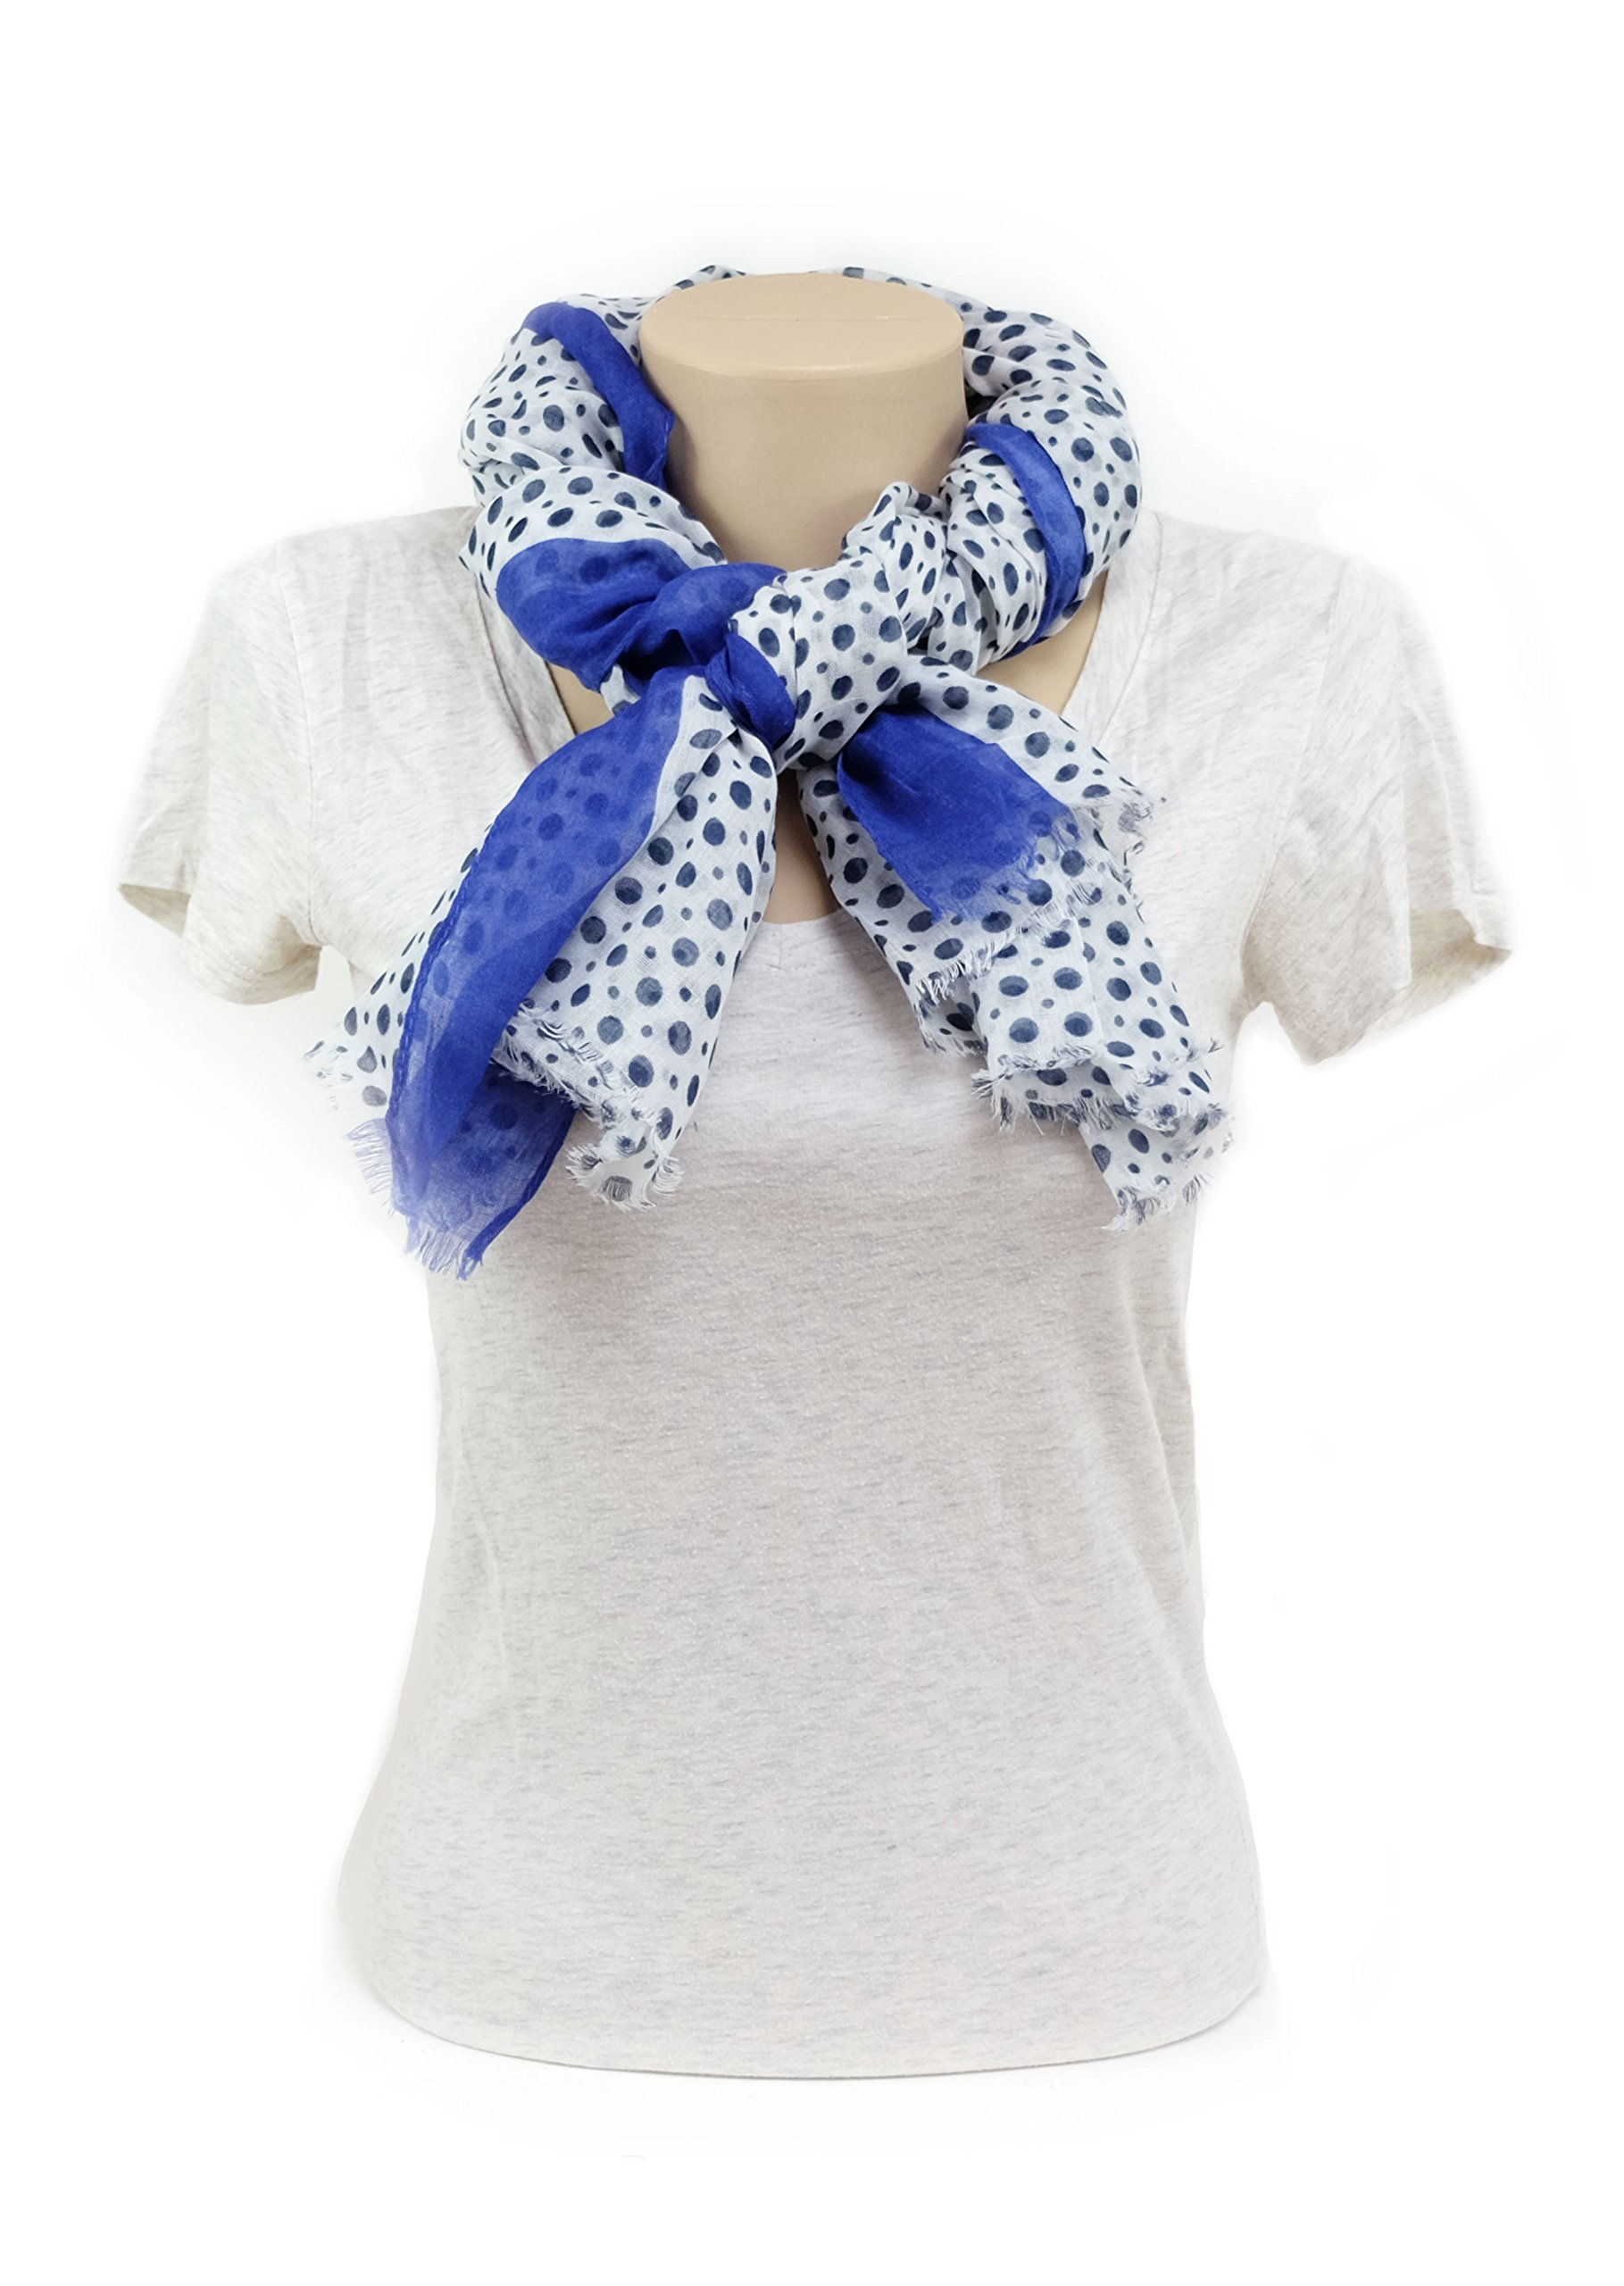 Scarves for Women by MIMOSITO Fashion Lightweight Elegant Geometric Patterned Wrap (Polka Dot-Blue) by MIMOSITO (Image #5)